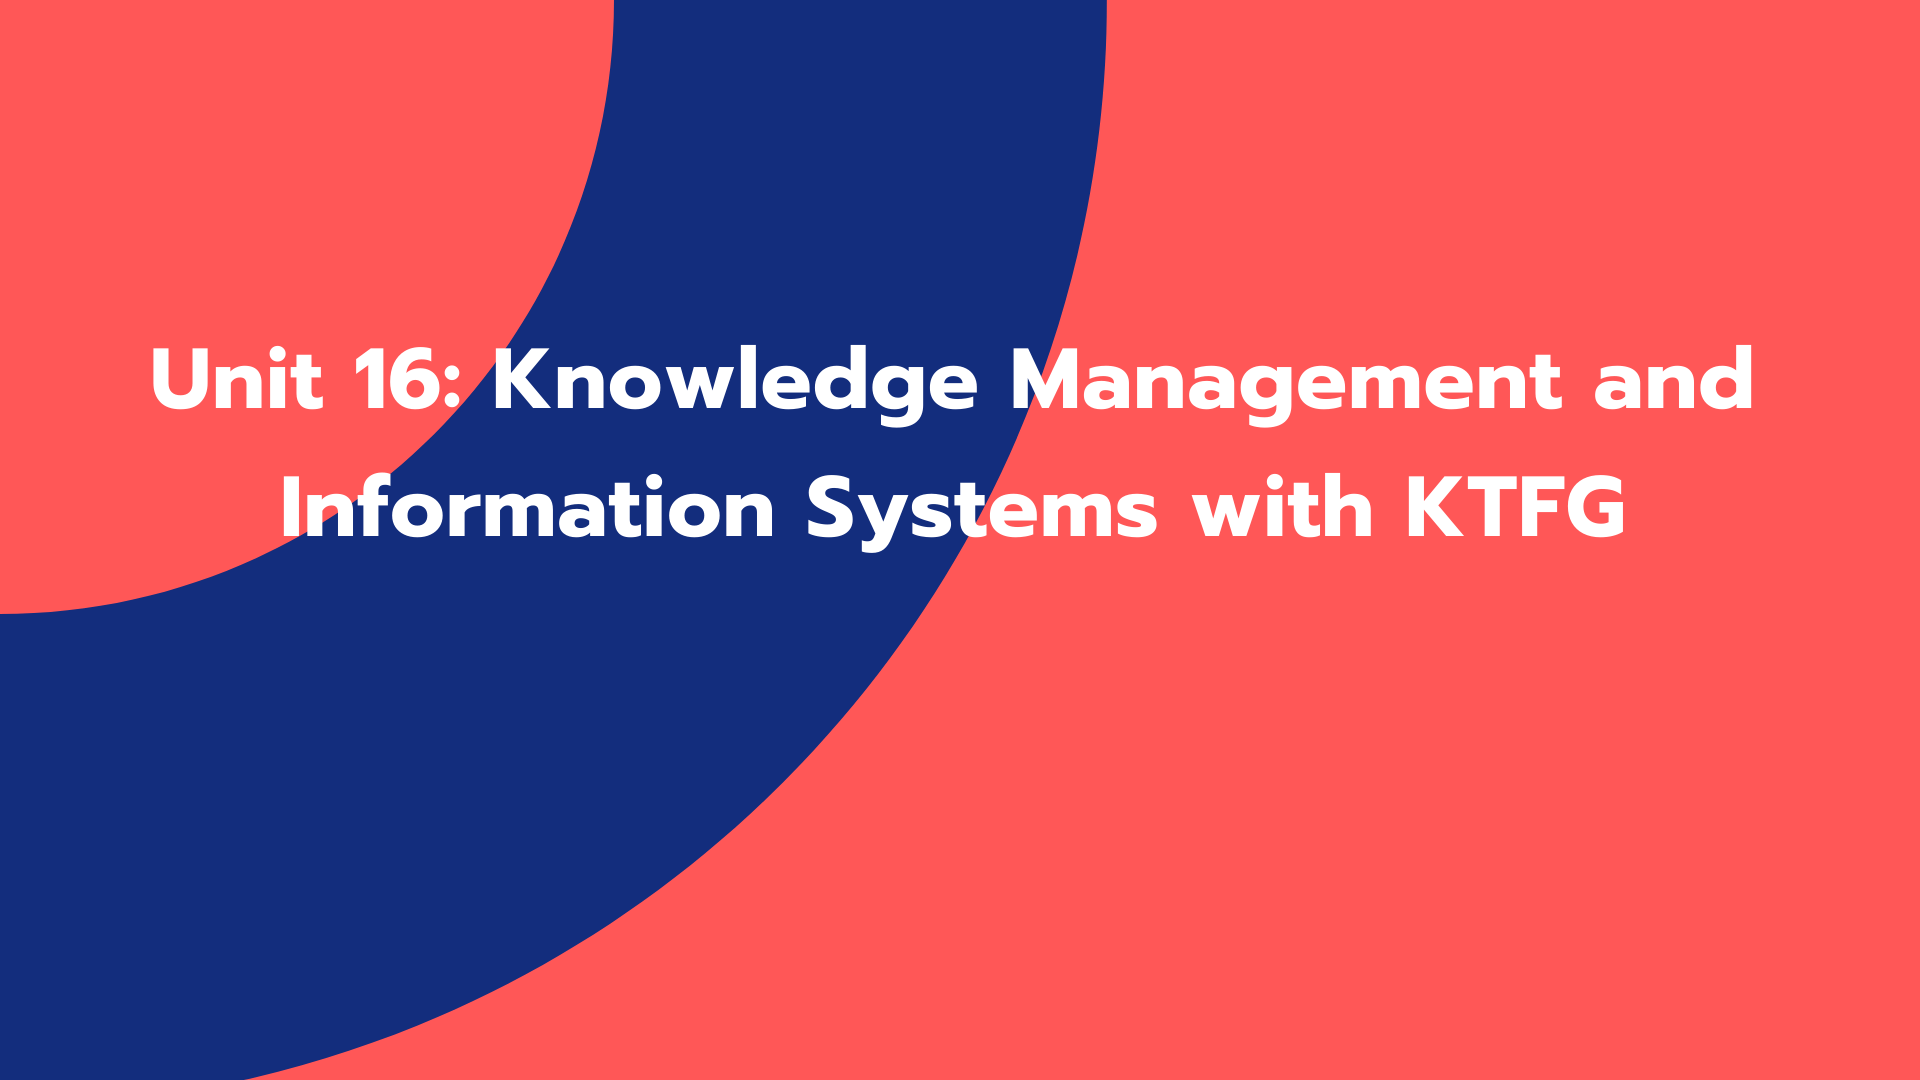 Unit 16: Knowledge Management and Information Systems with KTFG